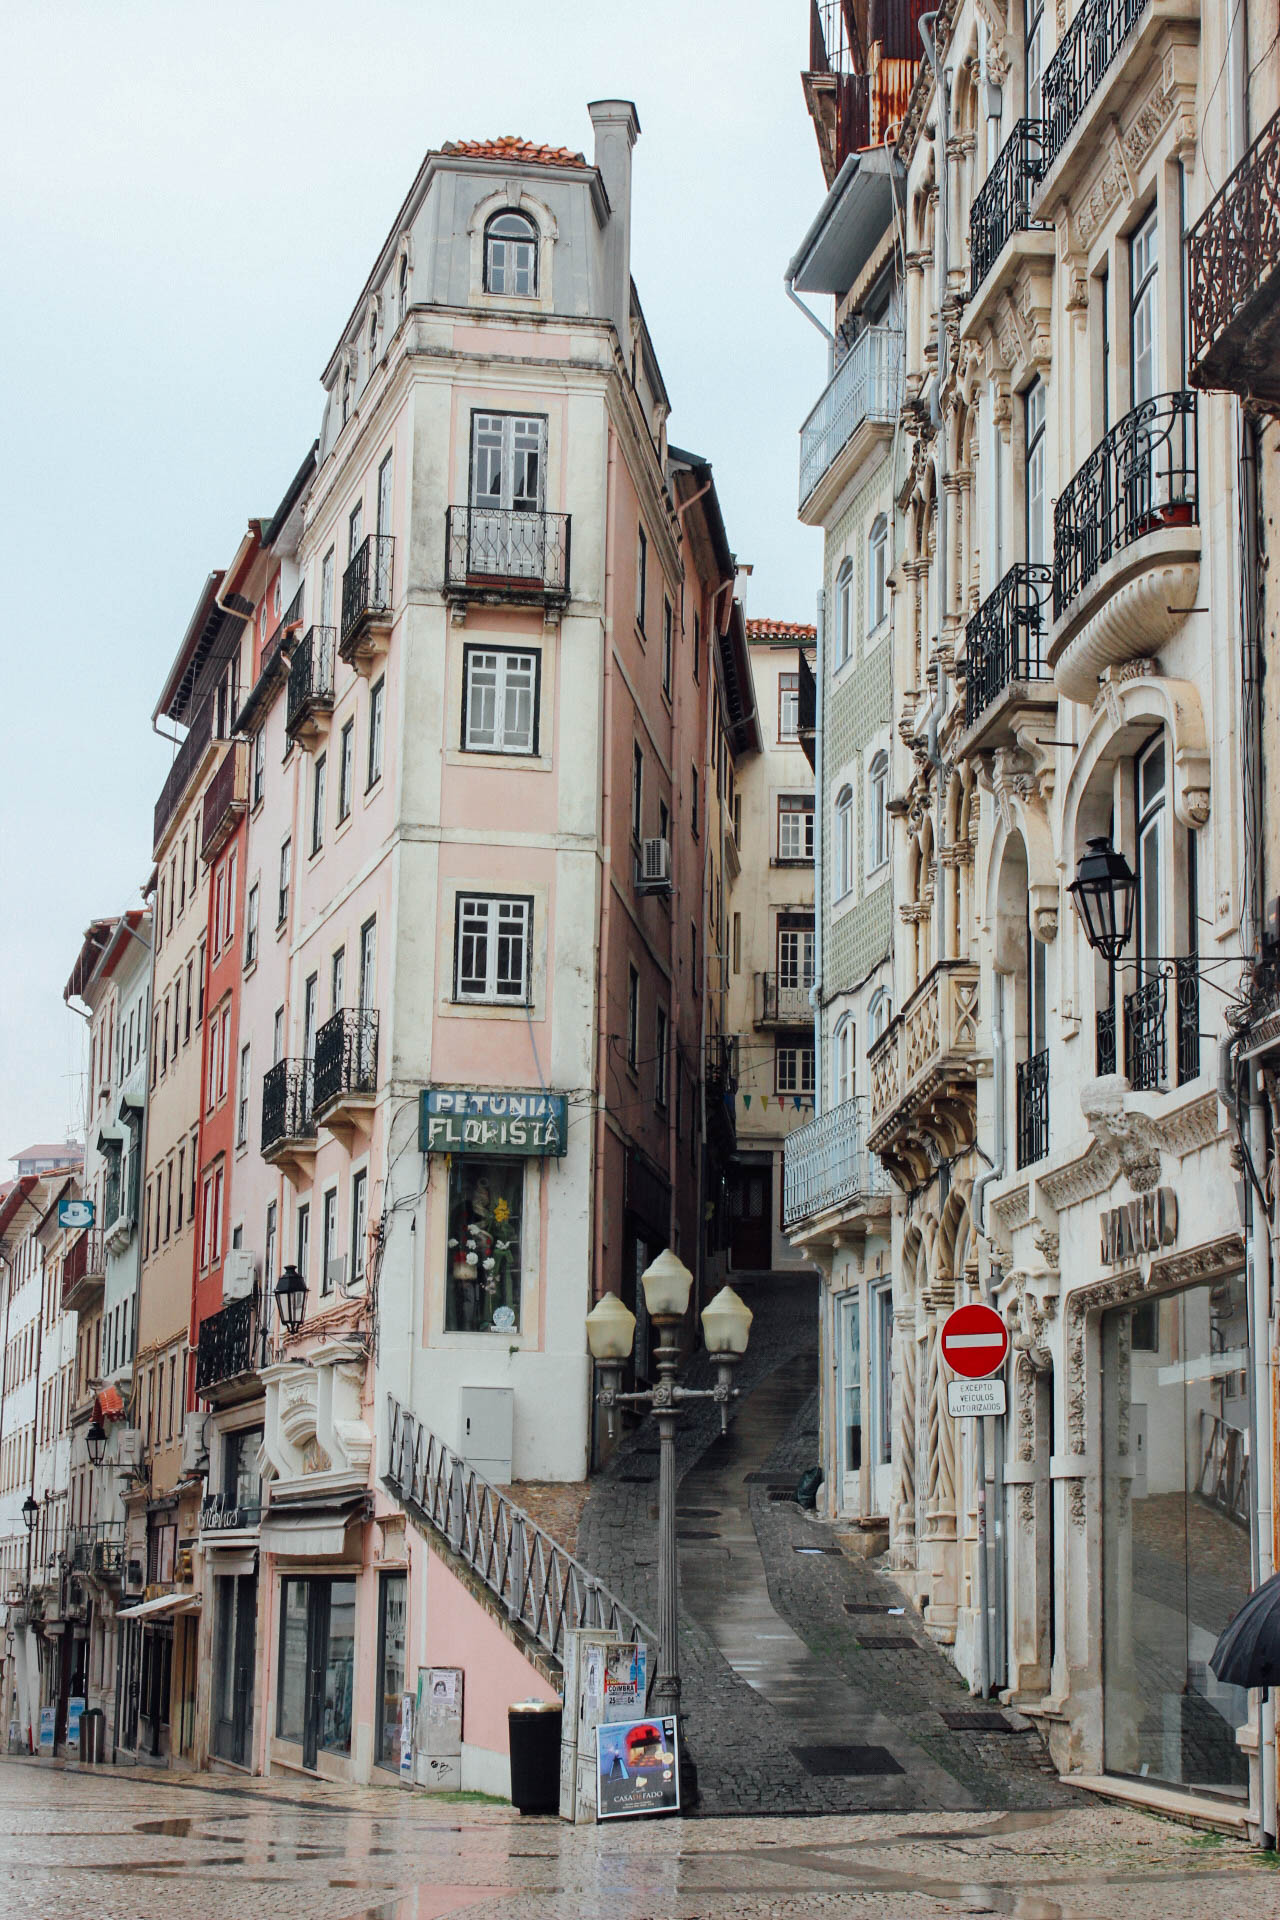 Coimbra in 2 days: a travel guide for history lovers